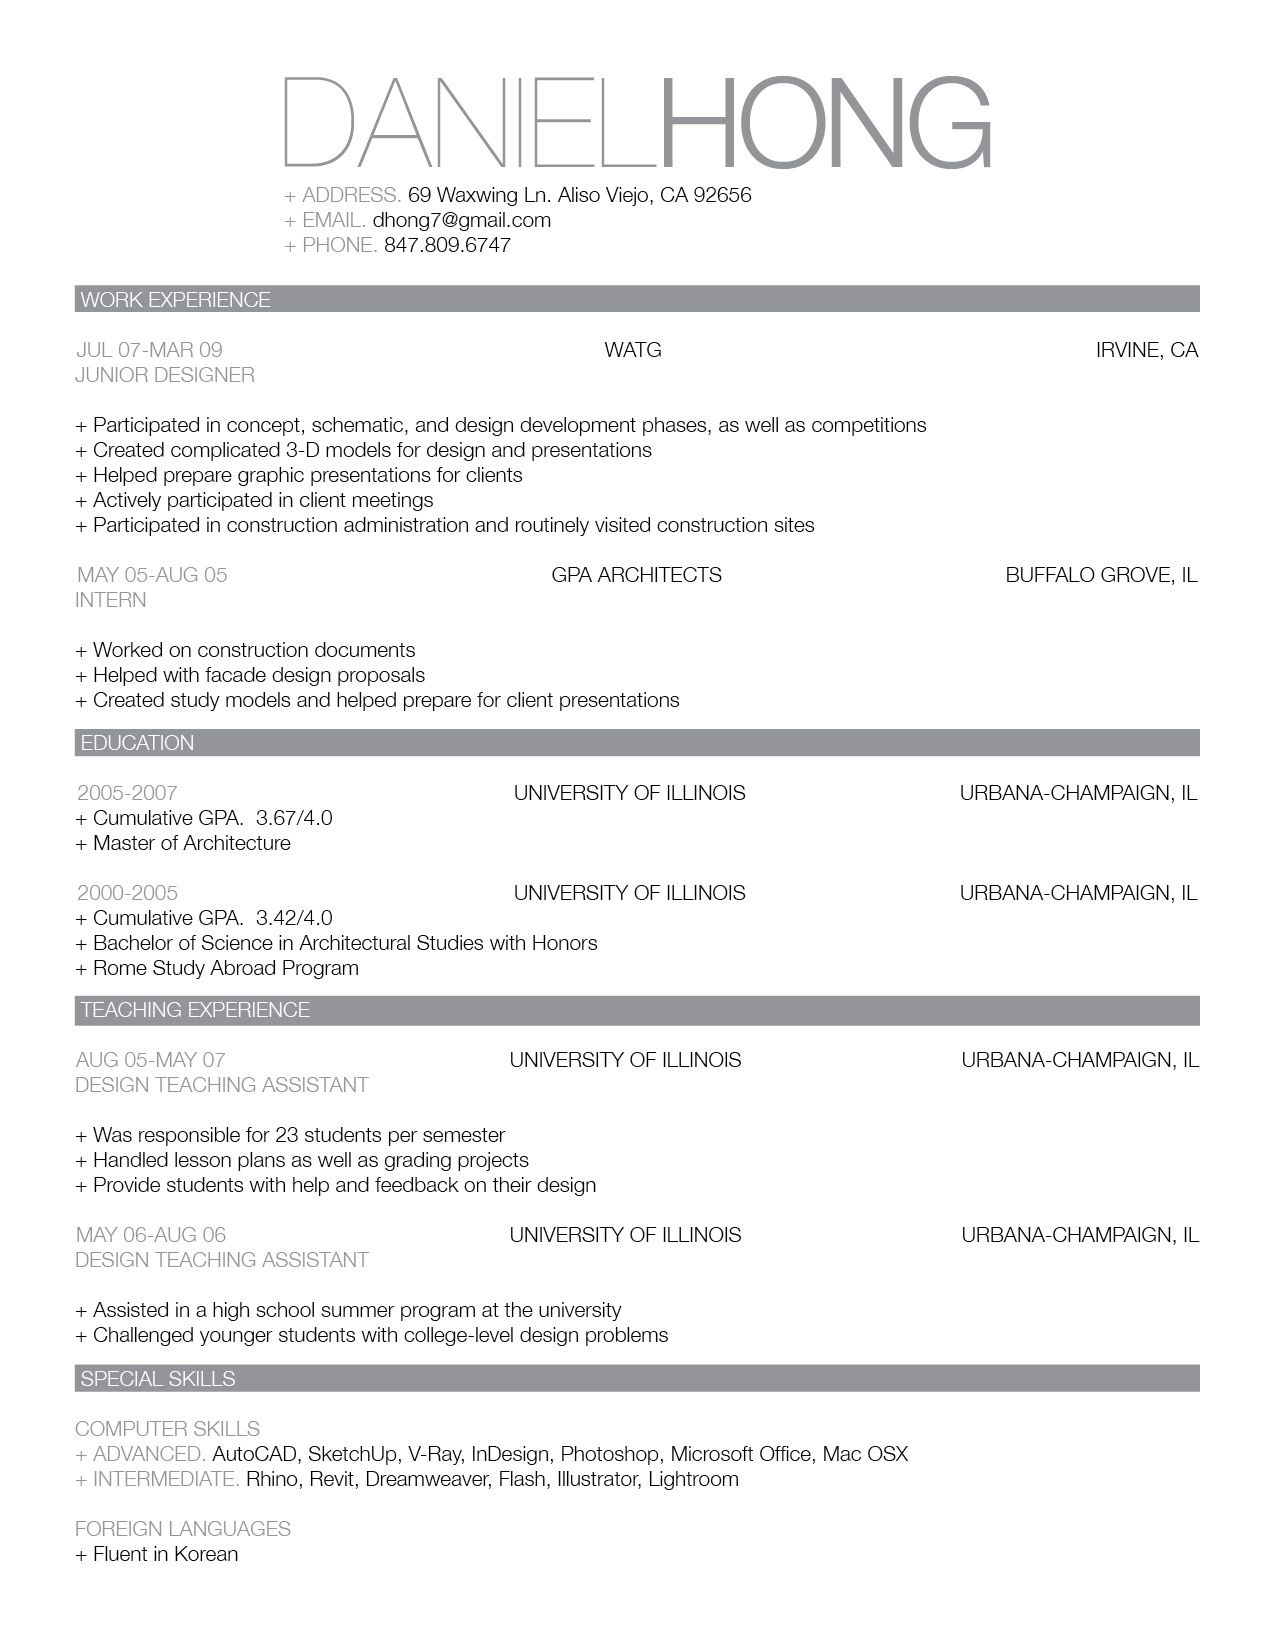 Resume Format Examples Updated Cv And Work Sample  Professional Resume Sample Resume